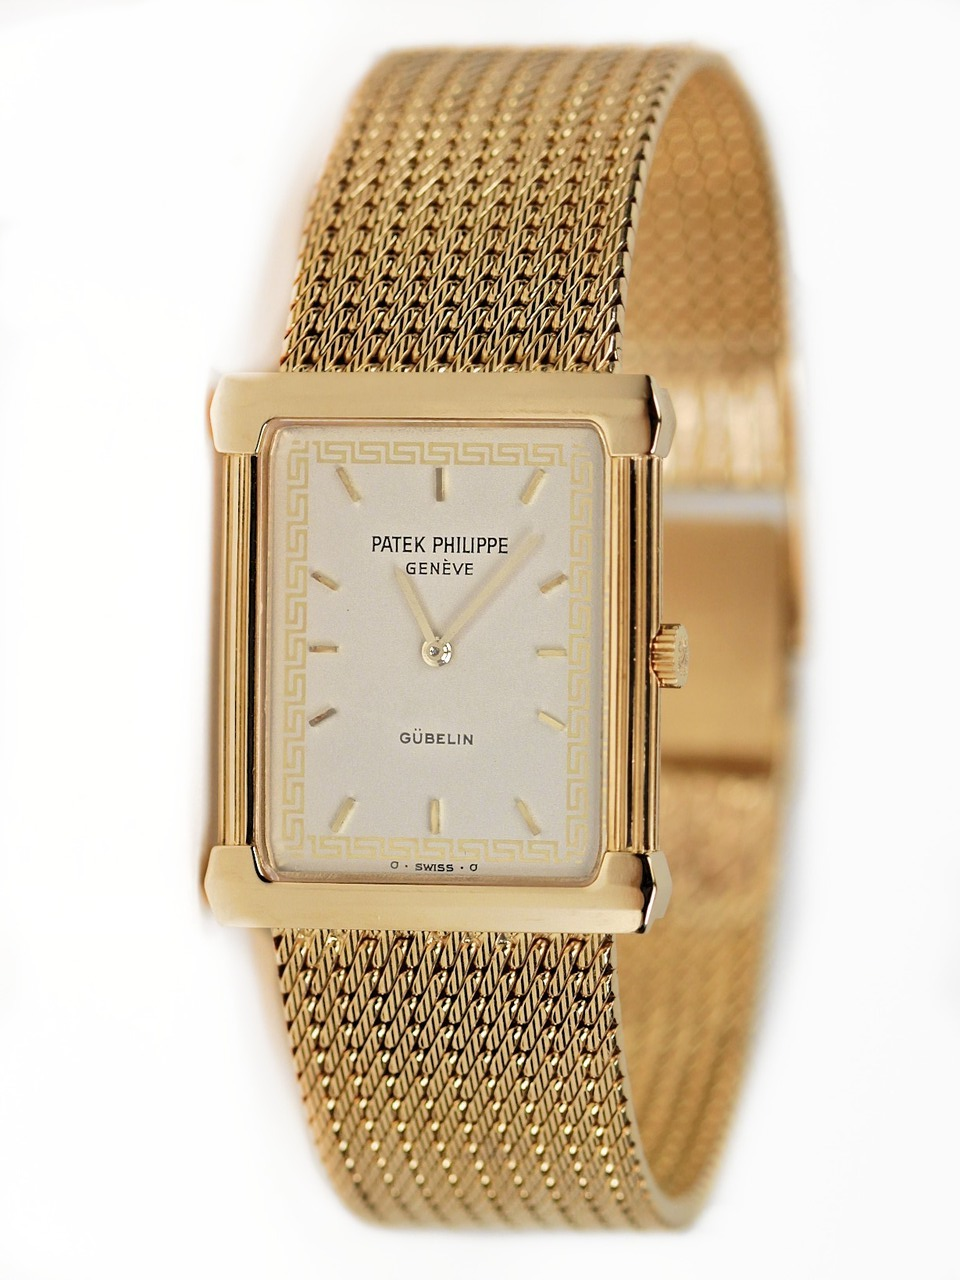 Patek Philippe 3775/1J Vintage Watch - circa 1985